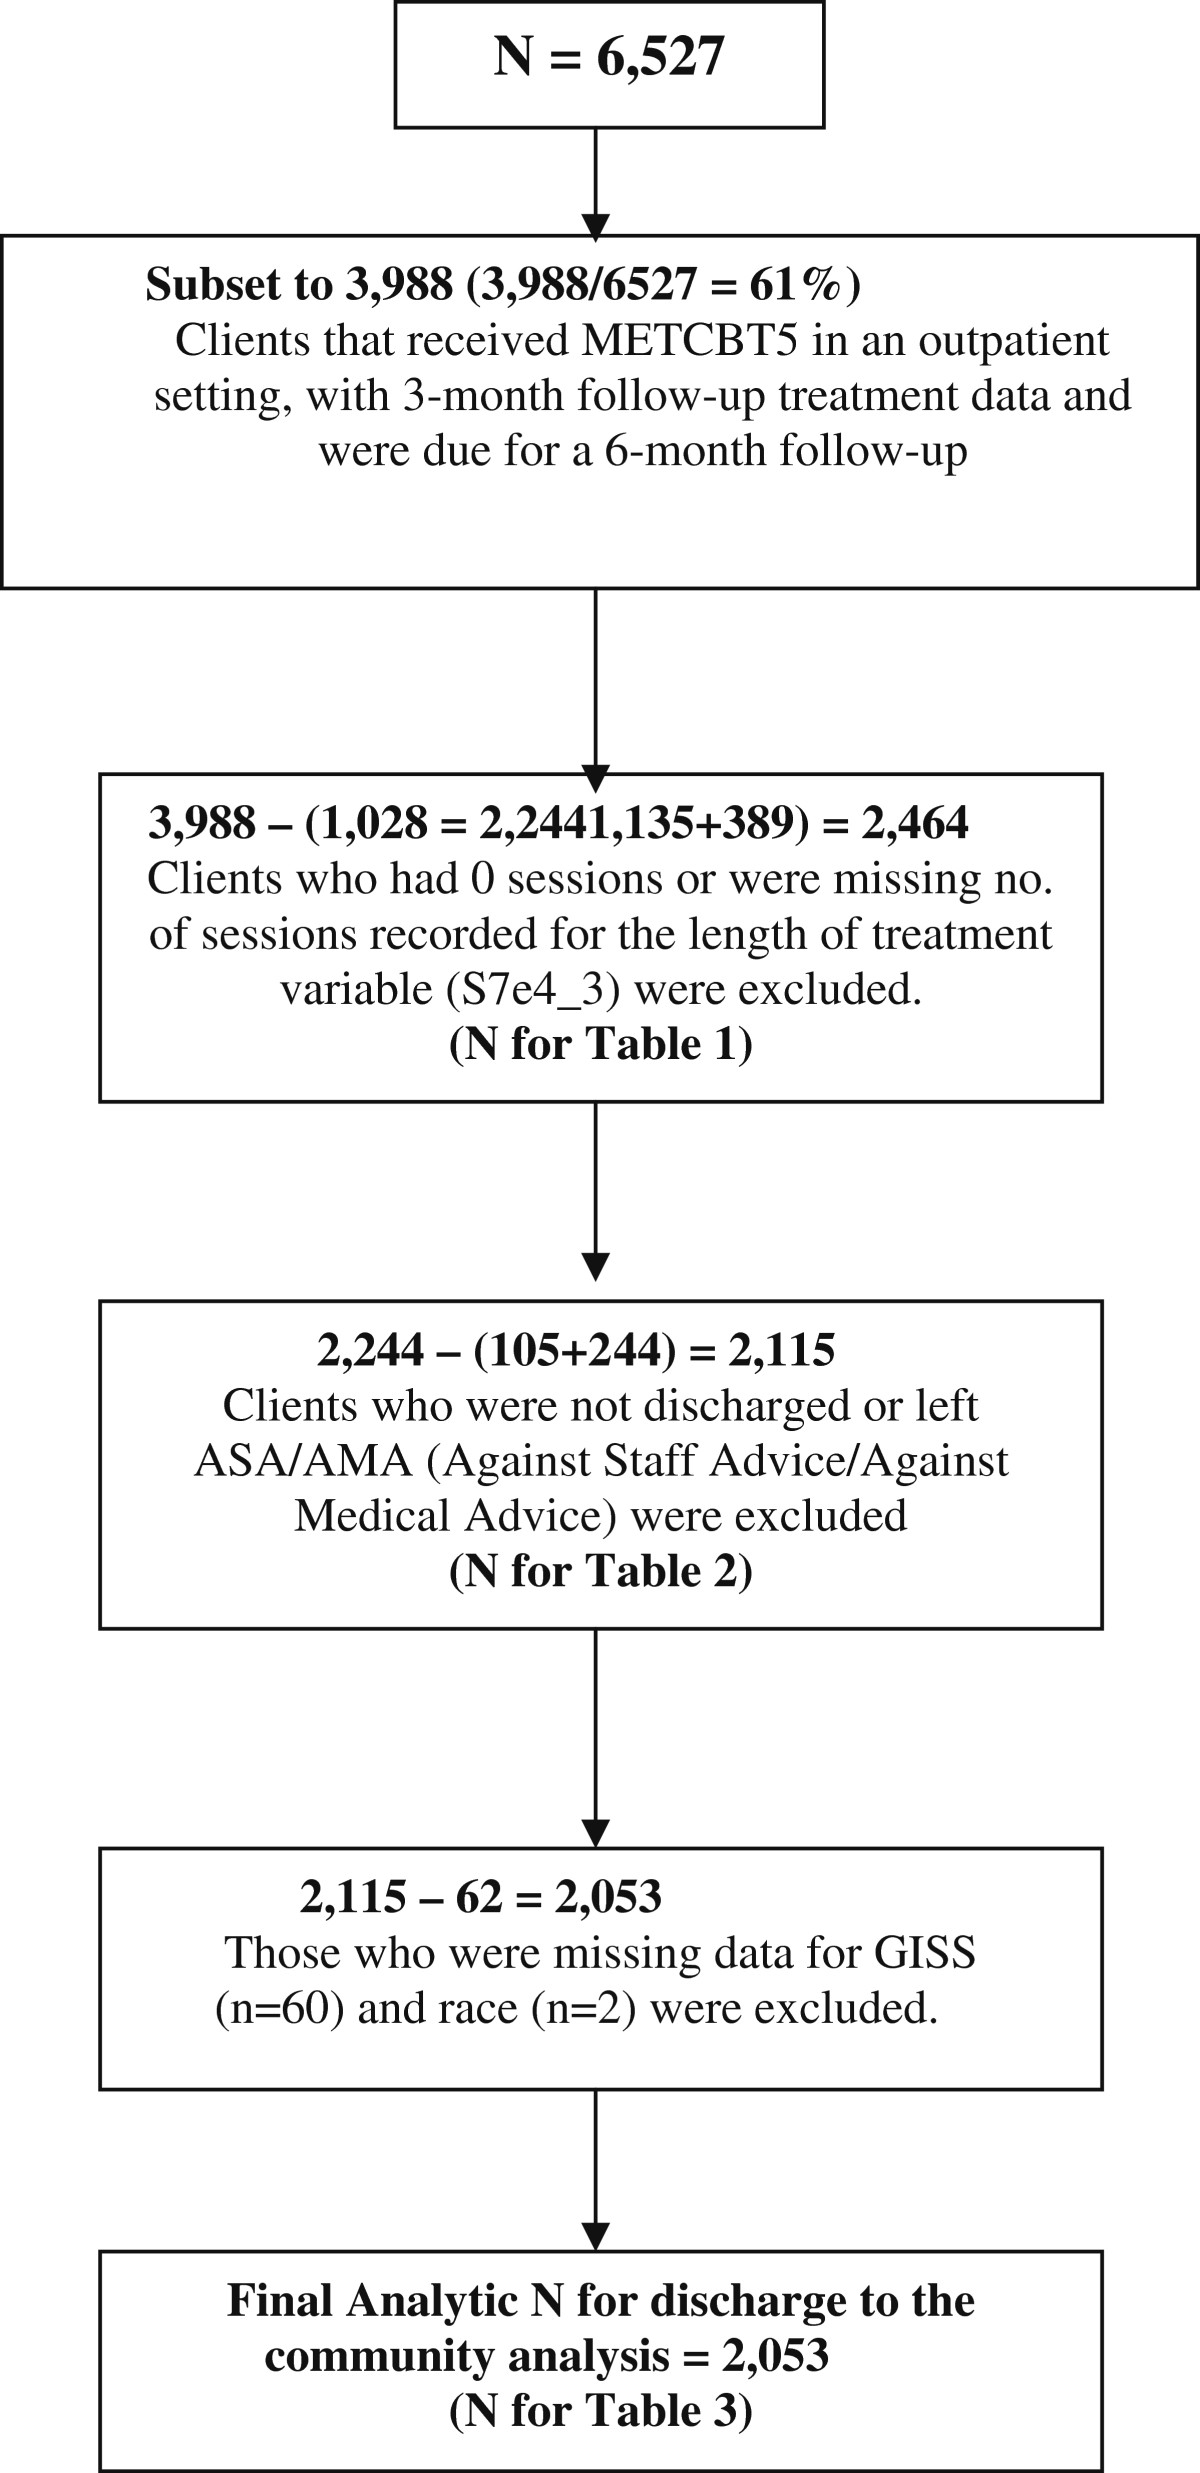 http://static-content.springer.com/image/art%3A10.1186%2F1747-597X-7-35/MediaObjects/13011_2011_Article_244_Fig1_HTML.jpg